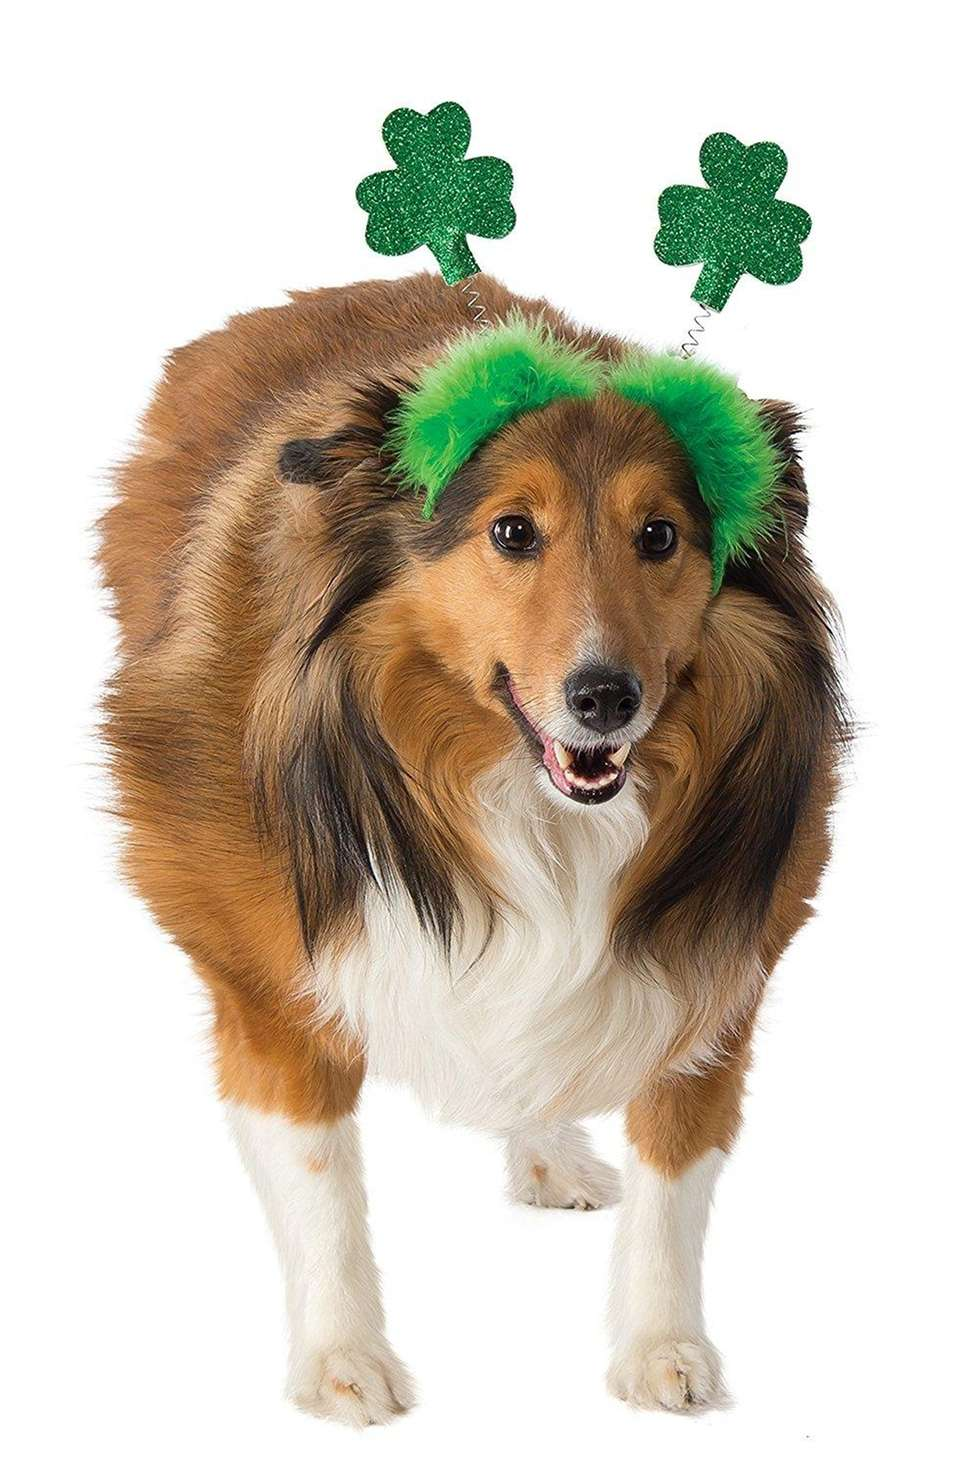 Every dog is Irish on St. Patrick's Day!